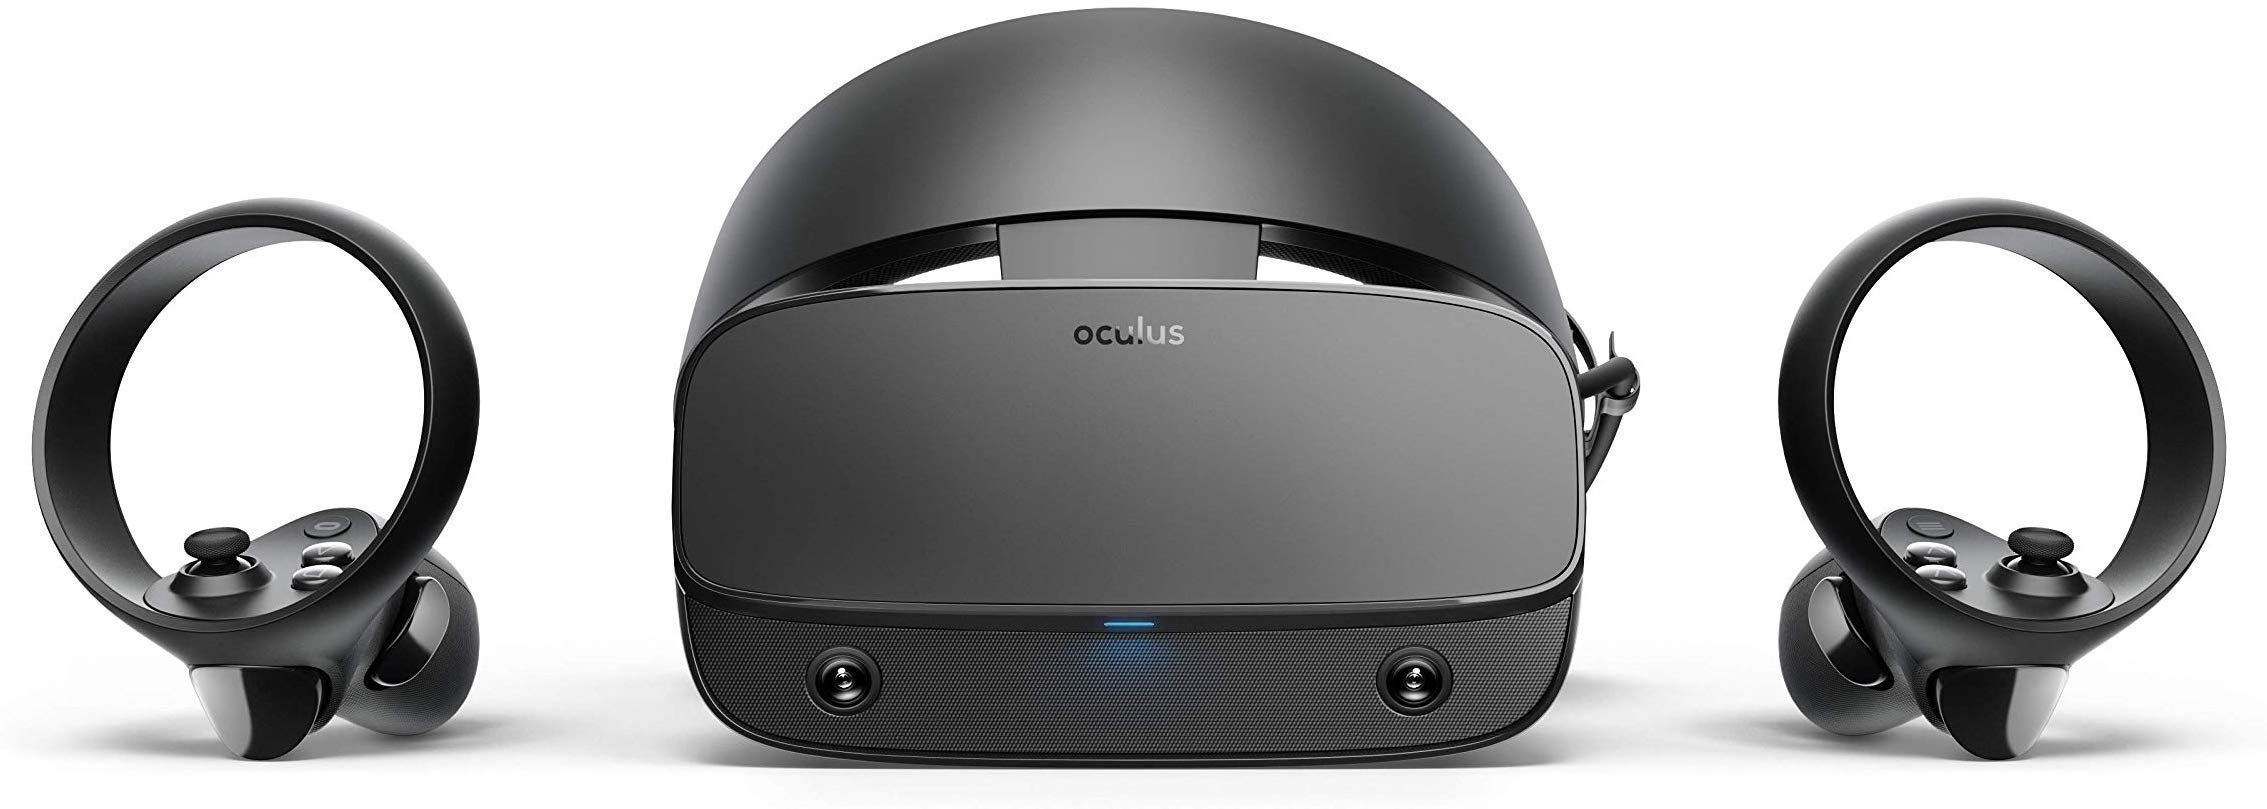 Oculus Rift S PCPowered VR Gaming Headset by Oculus